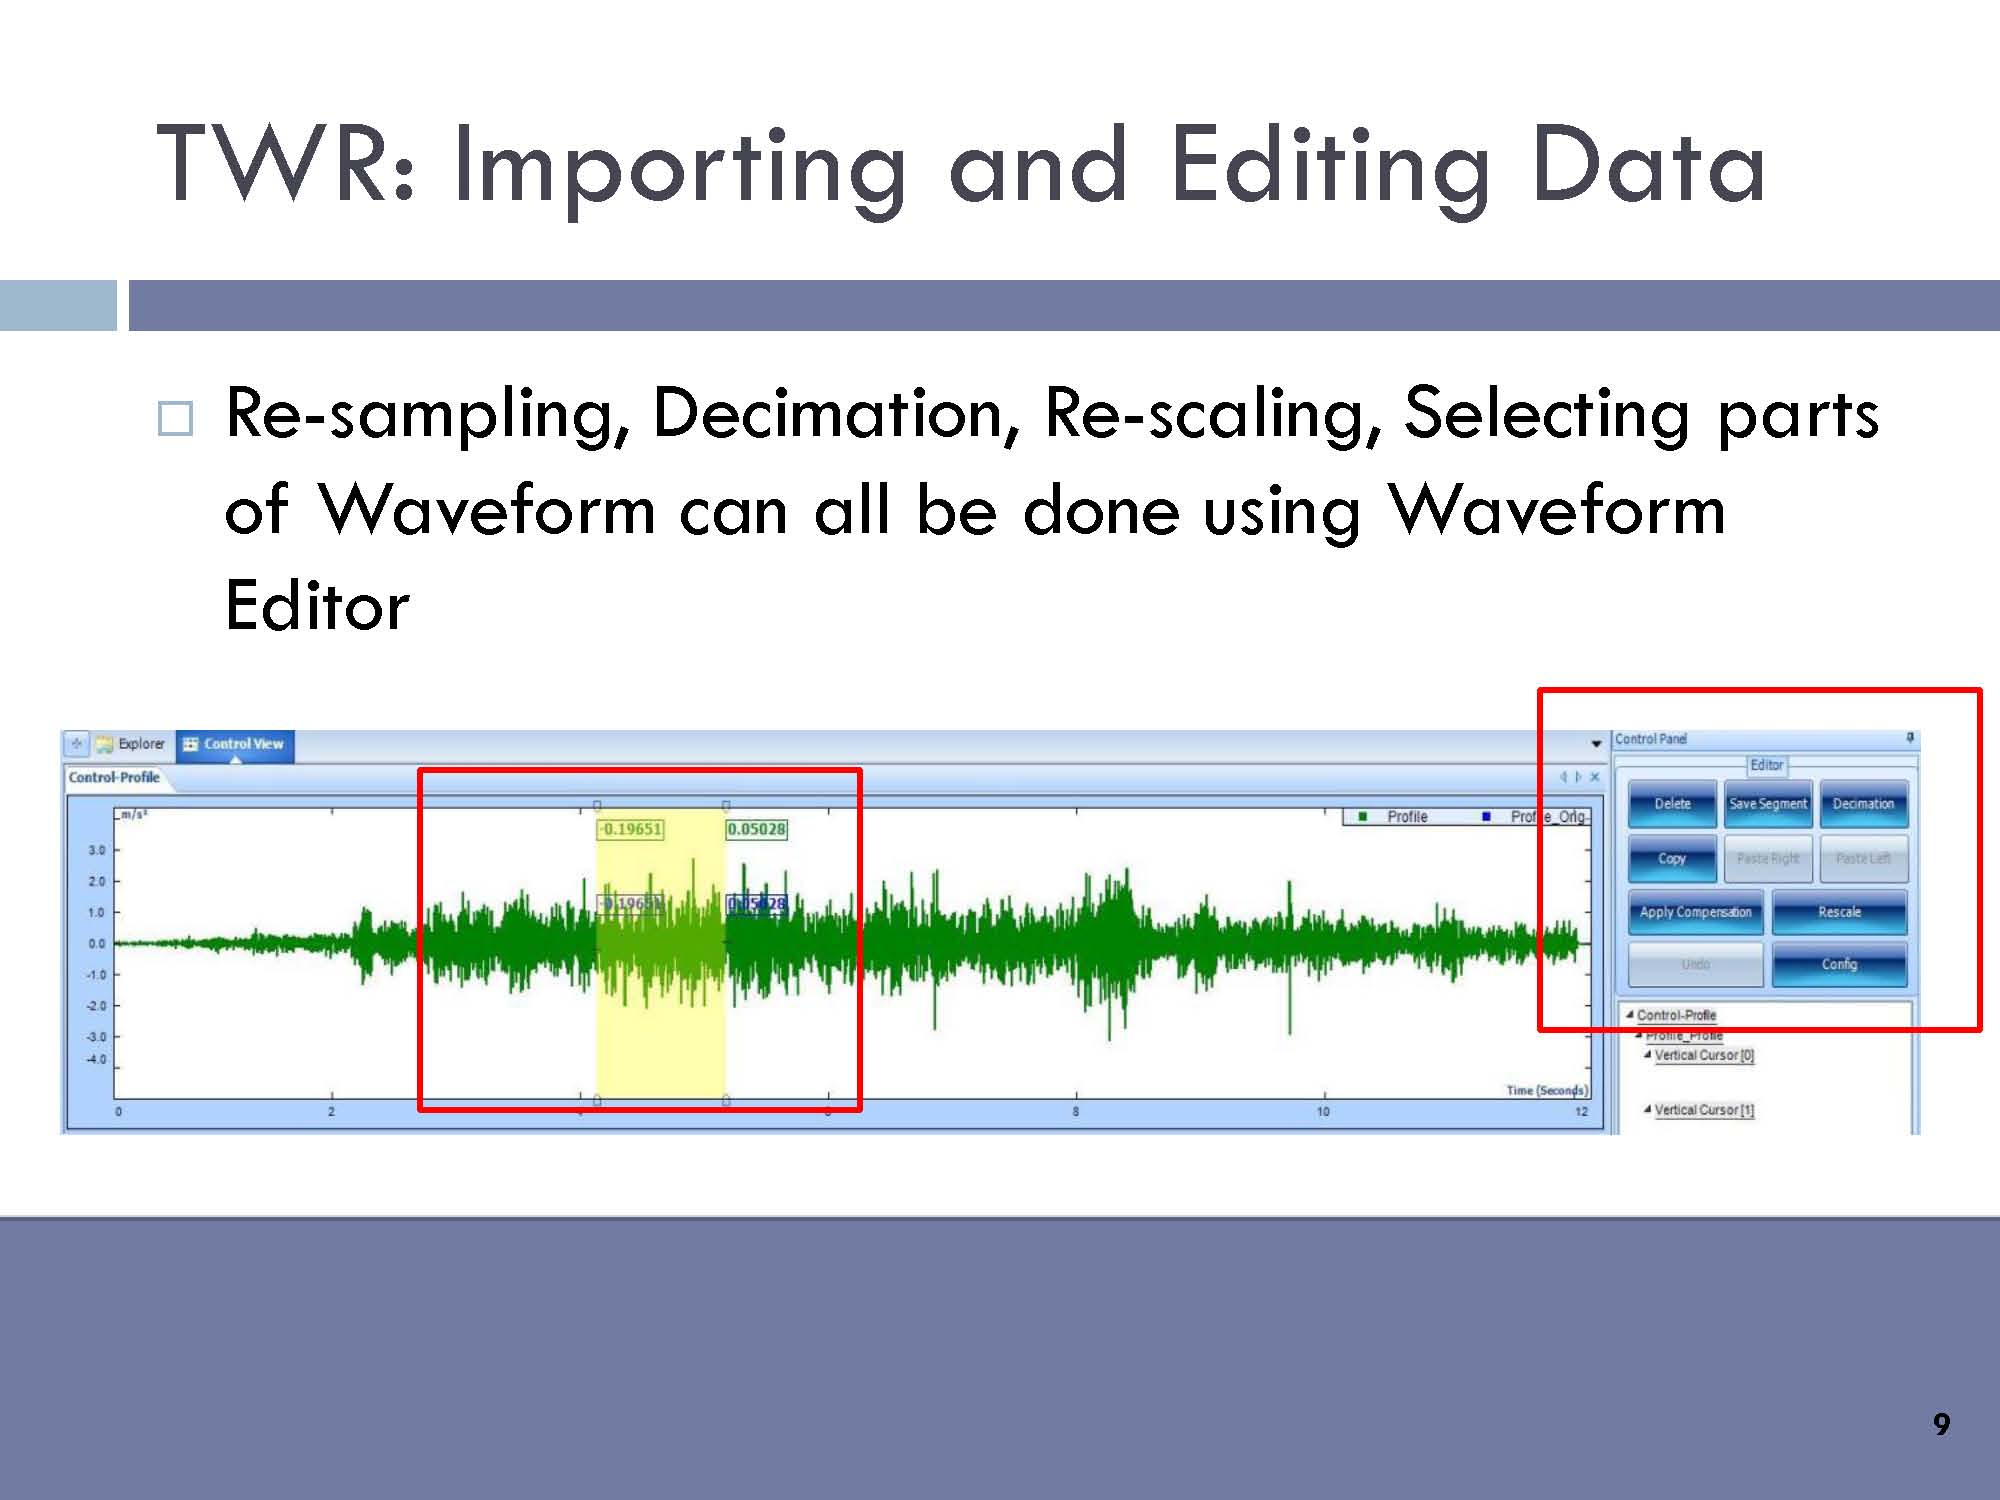 "Normal   0           false   false   false     EN-US   X-NONE   X-NONE                                        MicrosoftInternetExplorer4                                           TWR - Importing and editing data: Re-sampling, Decimation, Re-scaling, Selecting parts of Waveform can all be done using Waveform Editor                                                                                                                                                                                                                                                                                                   /* Style Definitions */  table.MsoNormalTable 	{mso-style-name:""Table Normal""; 	mso-tstyle-rowband-size:0; 	mso-tstyle-colband-size:0; 	mso-style-noshow:yes; 	mso-style-priority:99; 	mso-style-qformat:yes; 	mso-style-parent:""""; 	mso-padding-alt:0in 5.4pt 0in 5.4pt; 	mso-para-margin-top:0in; 	mso-para-margin-right:0in; 	mso-para-margin-bottom:10.0pt; 	mso-para-margin-left:0in; 	line-height:115%; 	mso-pagination:widow-orphan; 	font-size:11.0pt; 	font-family:""Calibri"",""sans-serif""; 	mso-ascii-font-family:Calibri; 	mso-ascii-theme-font:minor-latin; 	mso-hansi-font-family:Calibri; 	mso-hansi-theme-font:minor-latin;}"